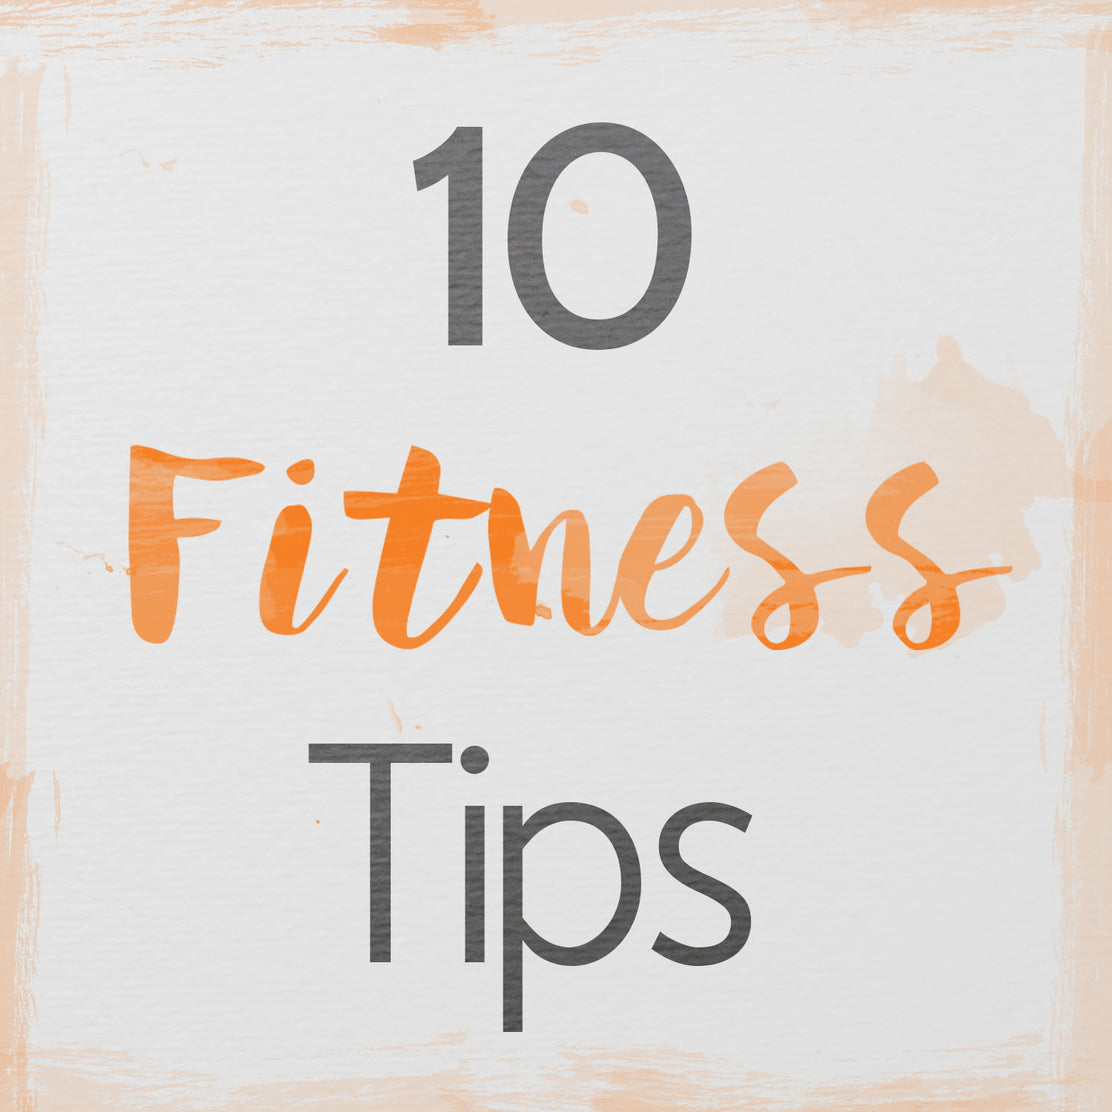 10 Fitness Tips to Jumpstart Your Active Lifestyle